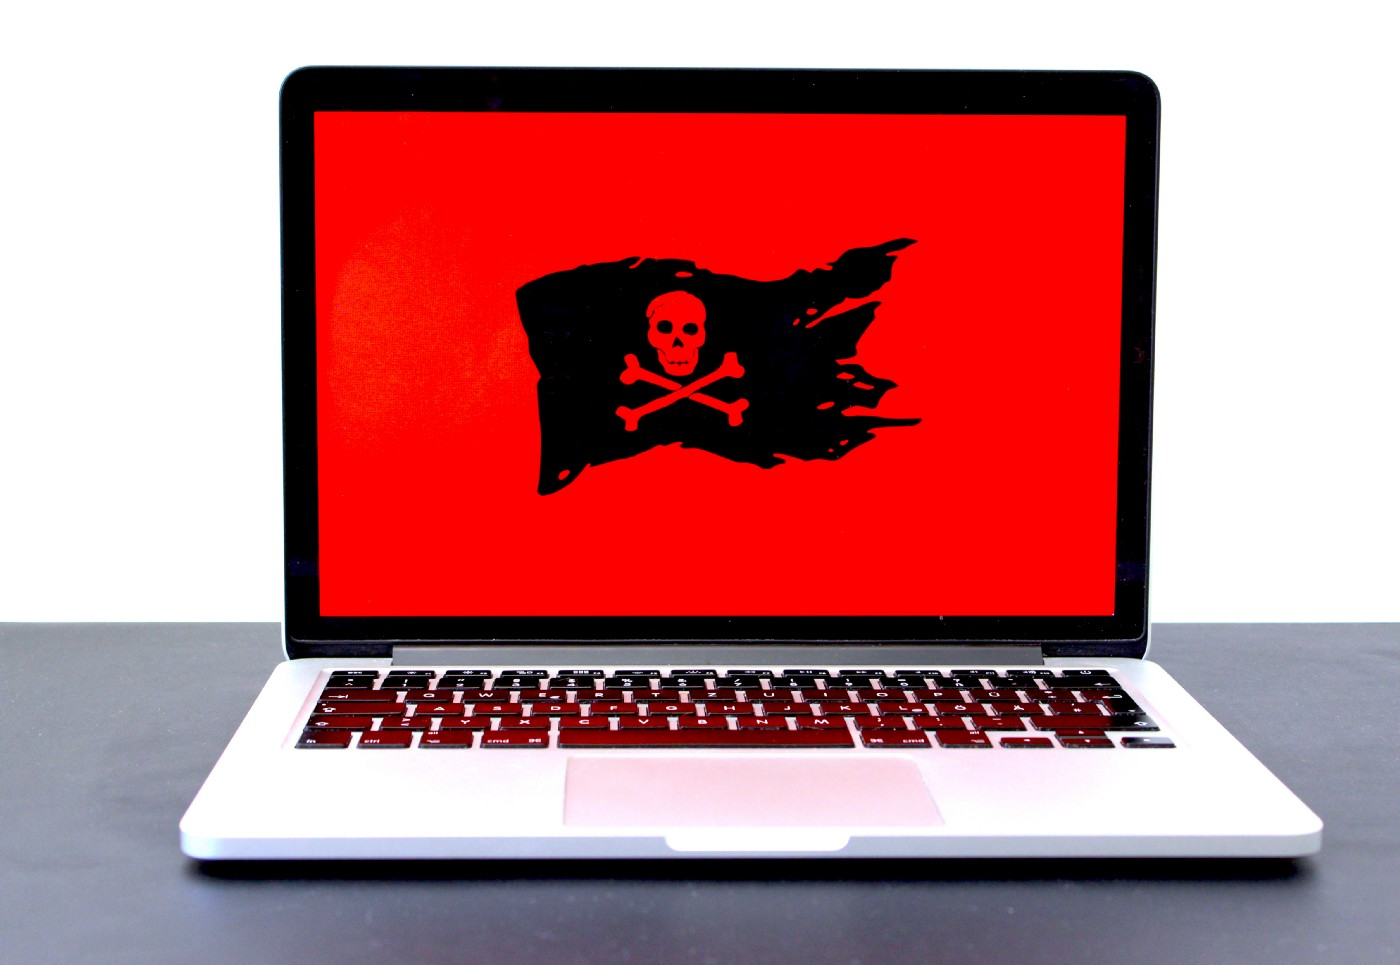 Laptop computer with skull and crossbones for a computer error